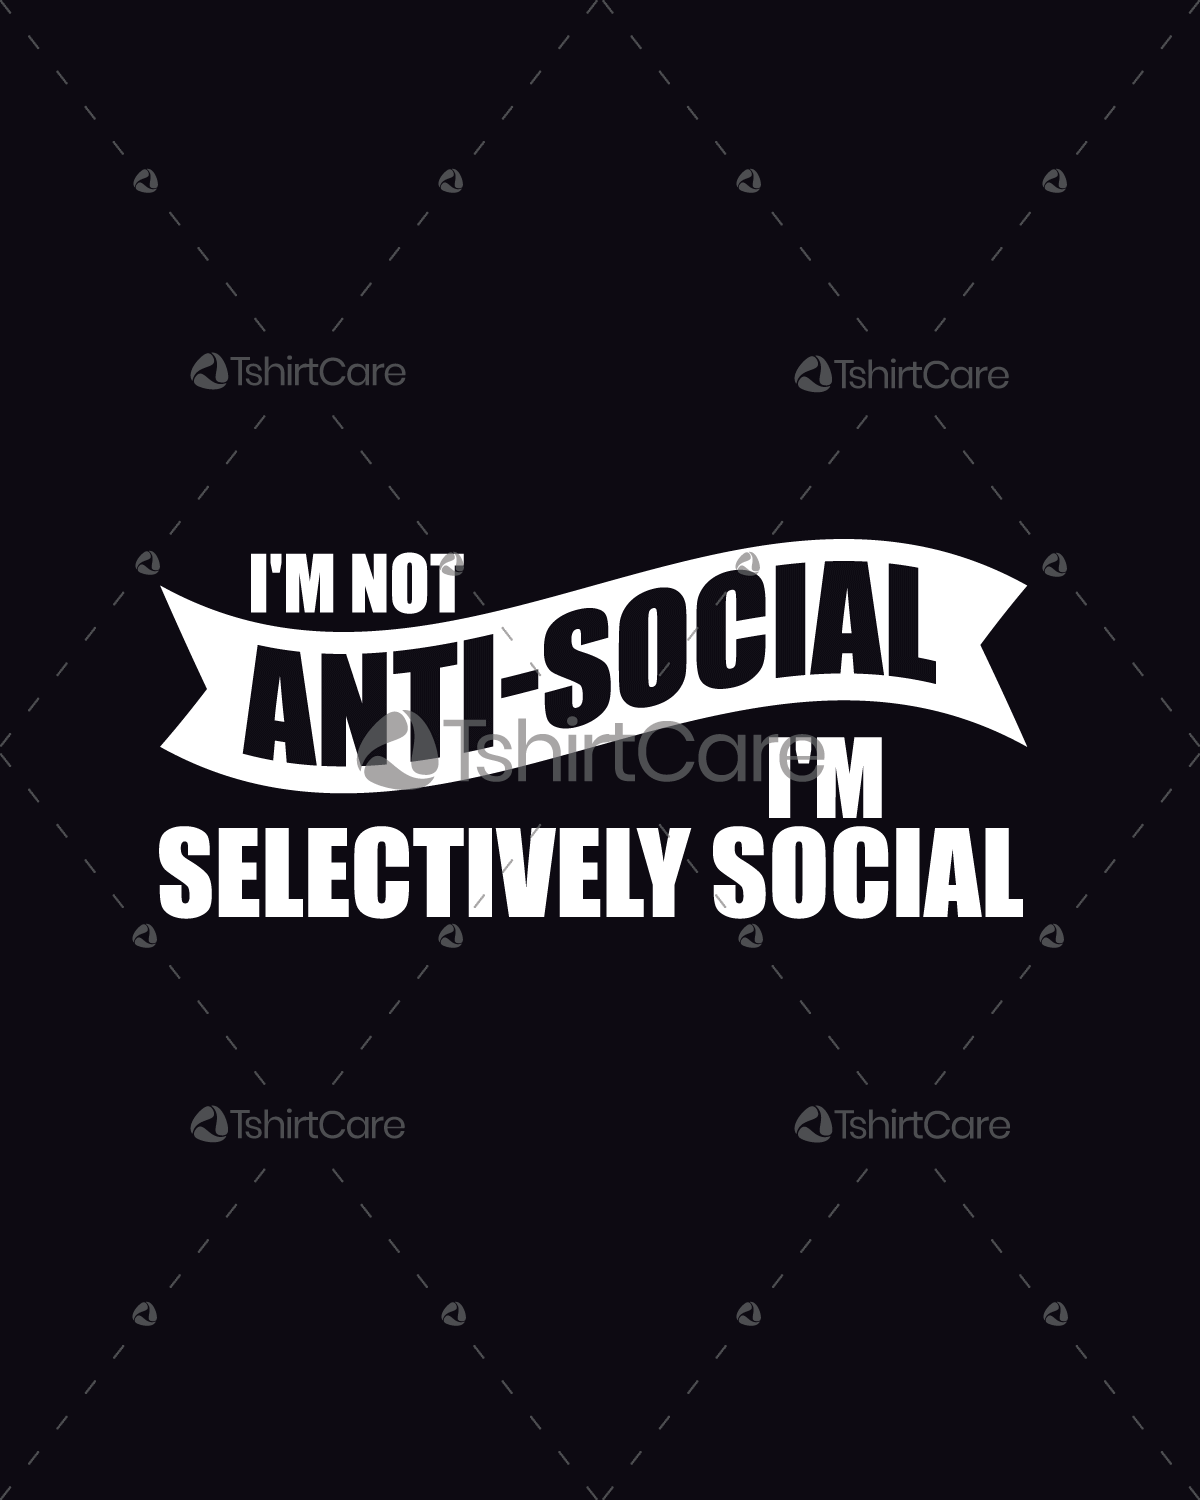 7b62f3830 I'm not antisocial I'm selectively social T shirt Design Graphic ...